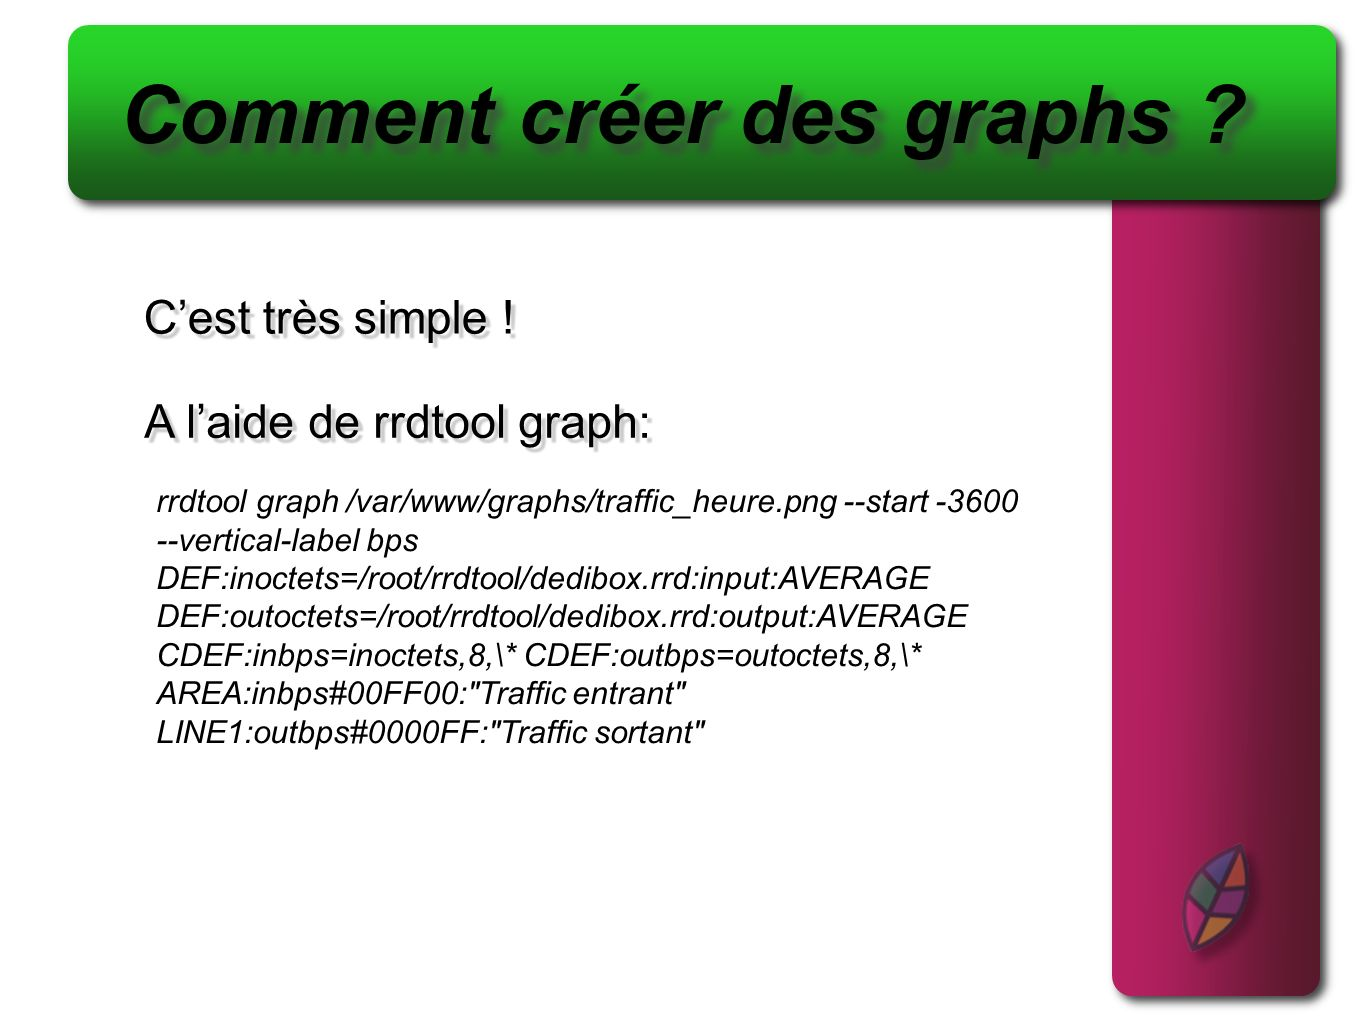 Cest très simple ! Cest très simple ! Comment créer des graphs ? A laide de rrdtool graph: rrdtool graph /var/www/graphs/traffic_heure.png --start -36